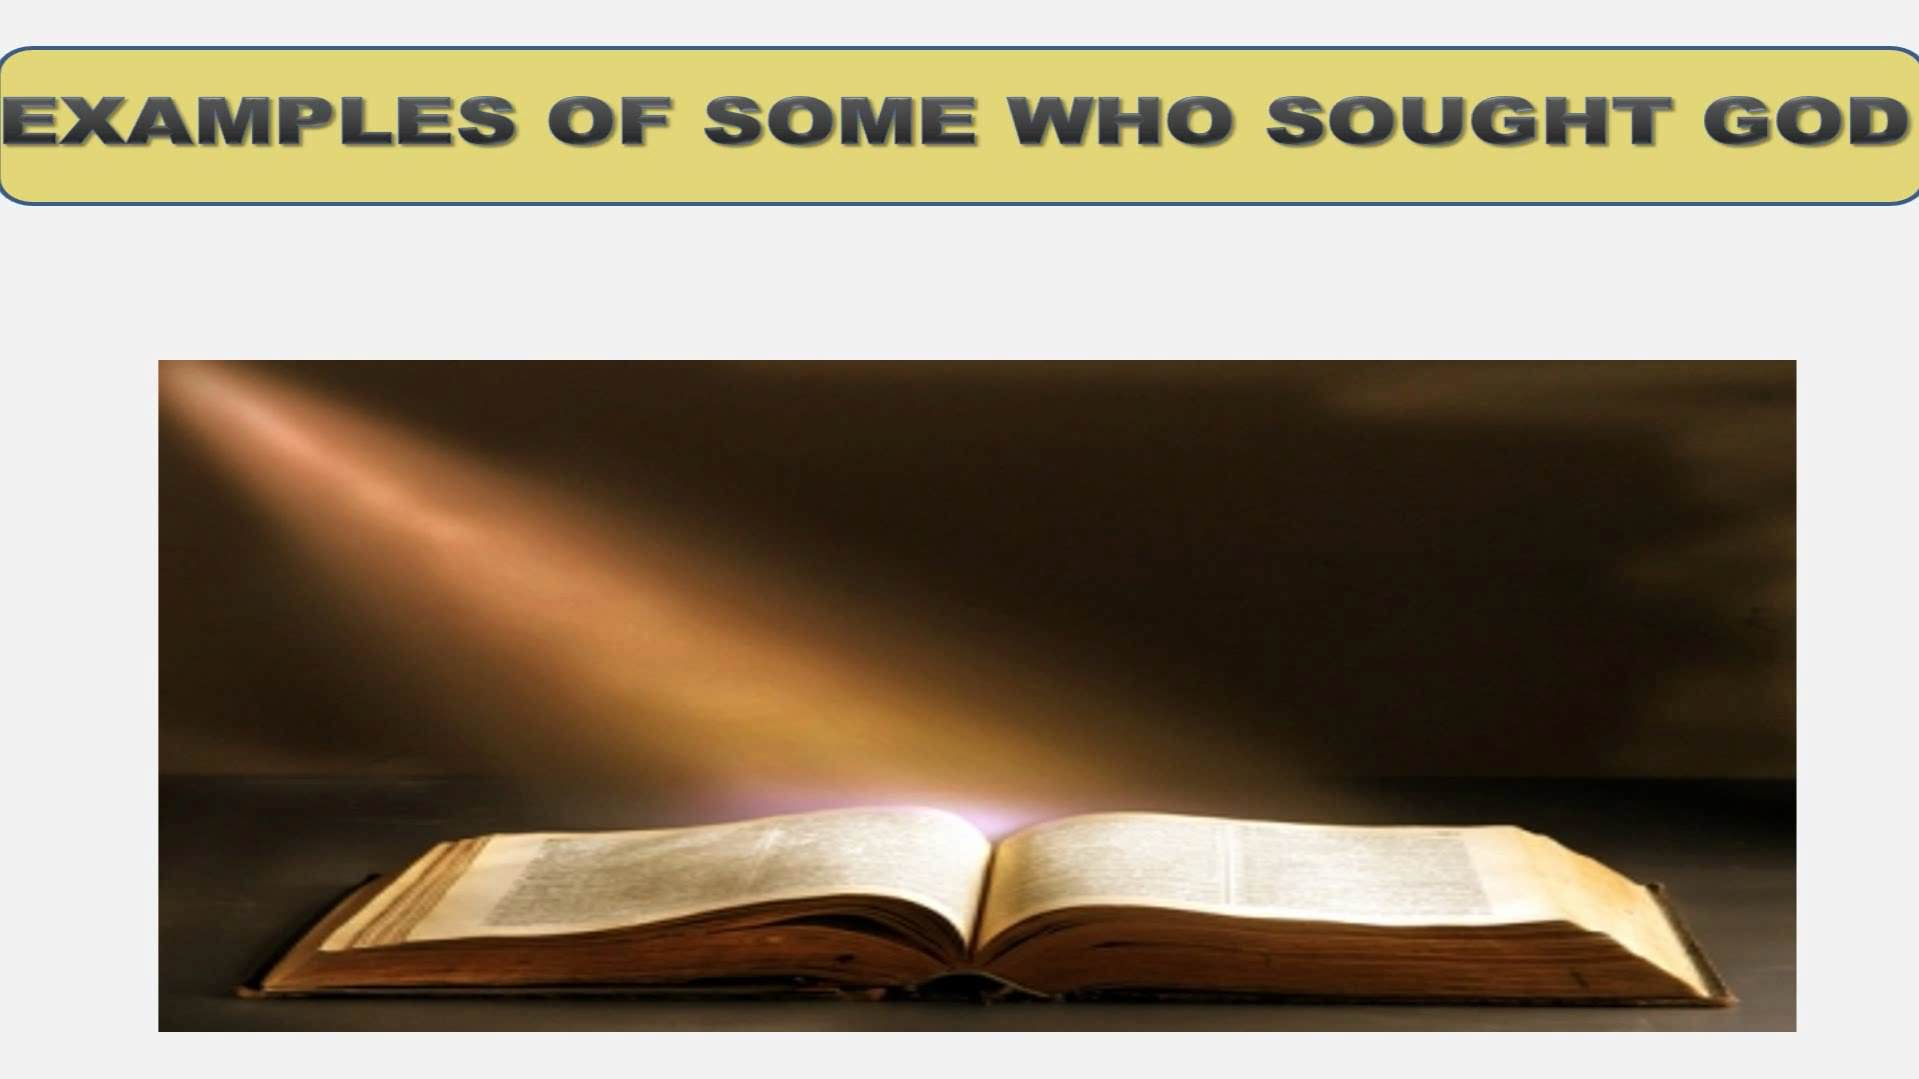 Seeking God (Lesson 4:  Examples Of Some Who Sought God)